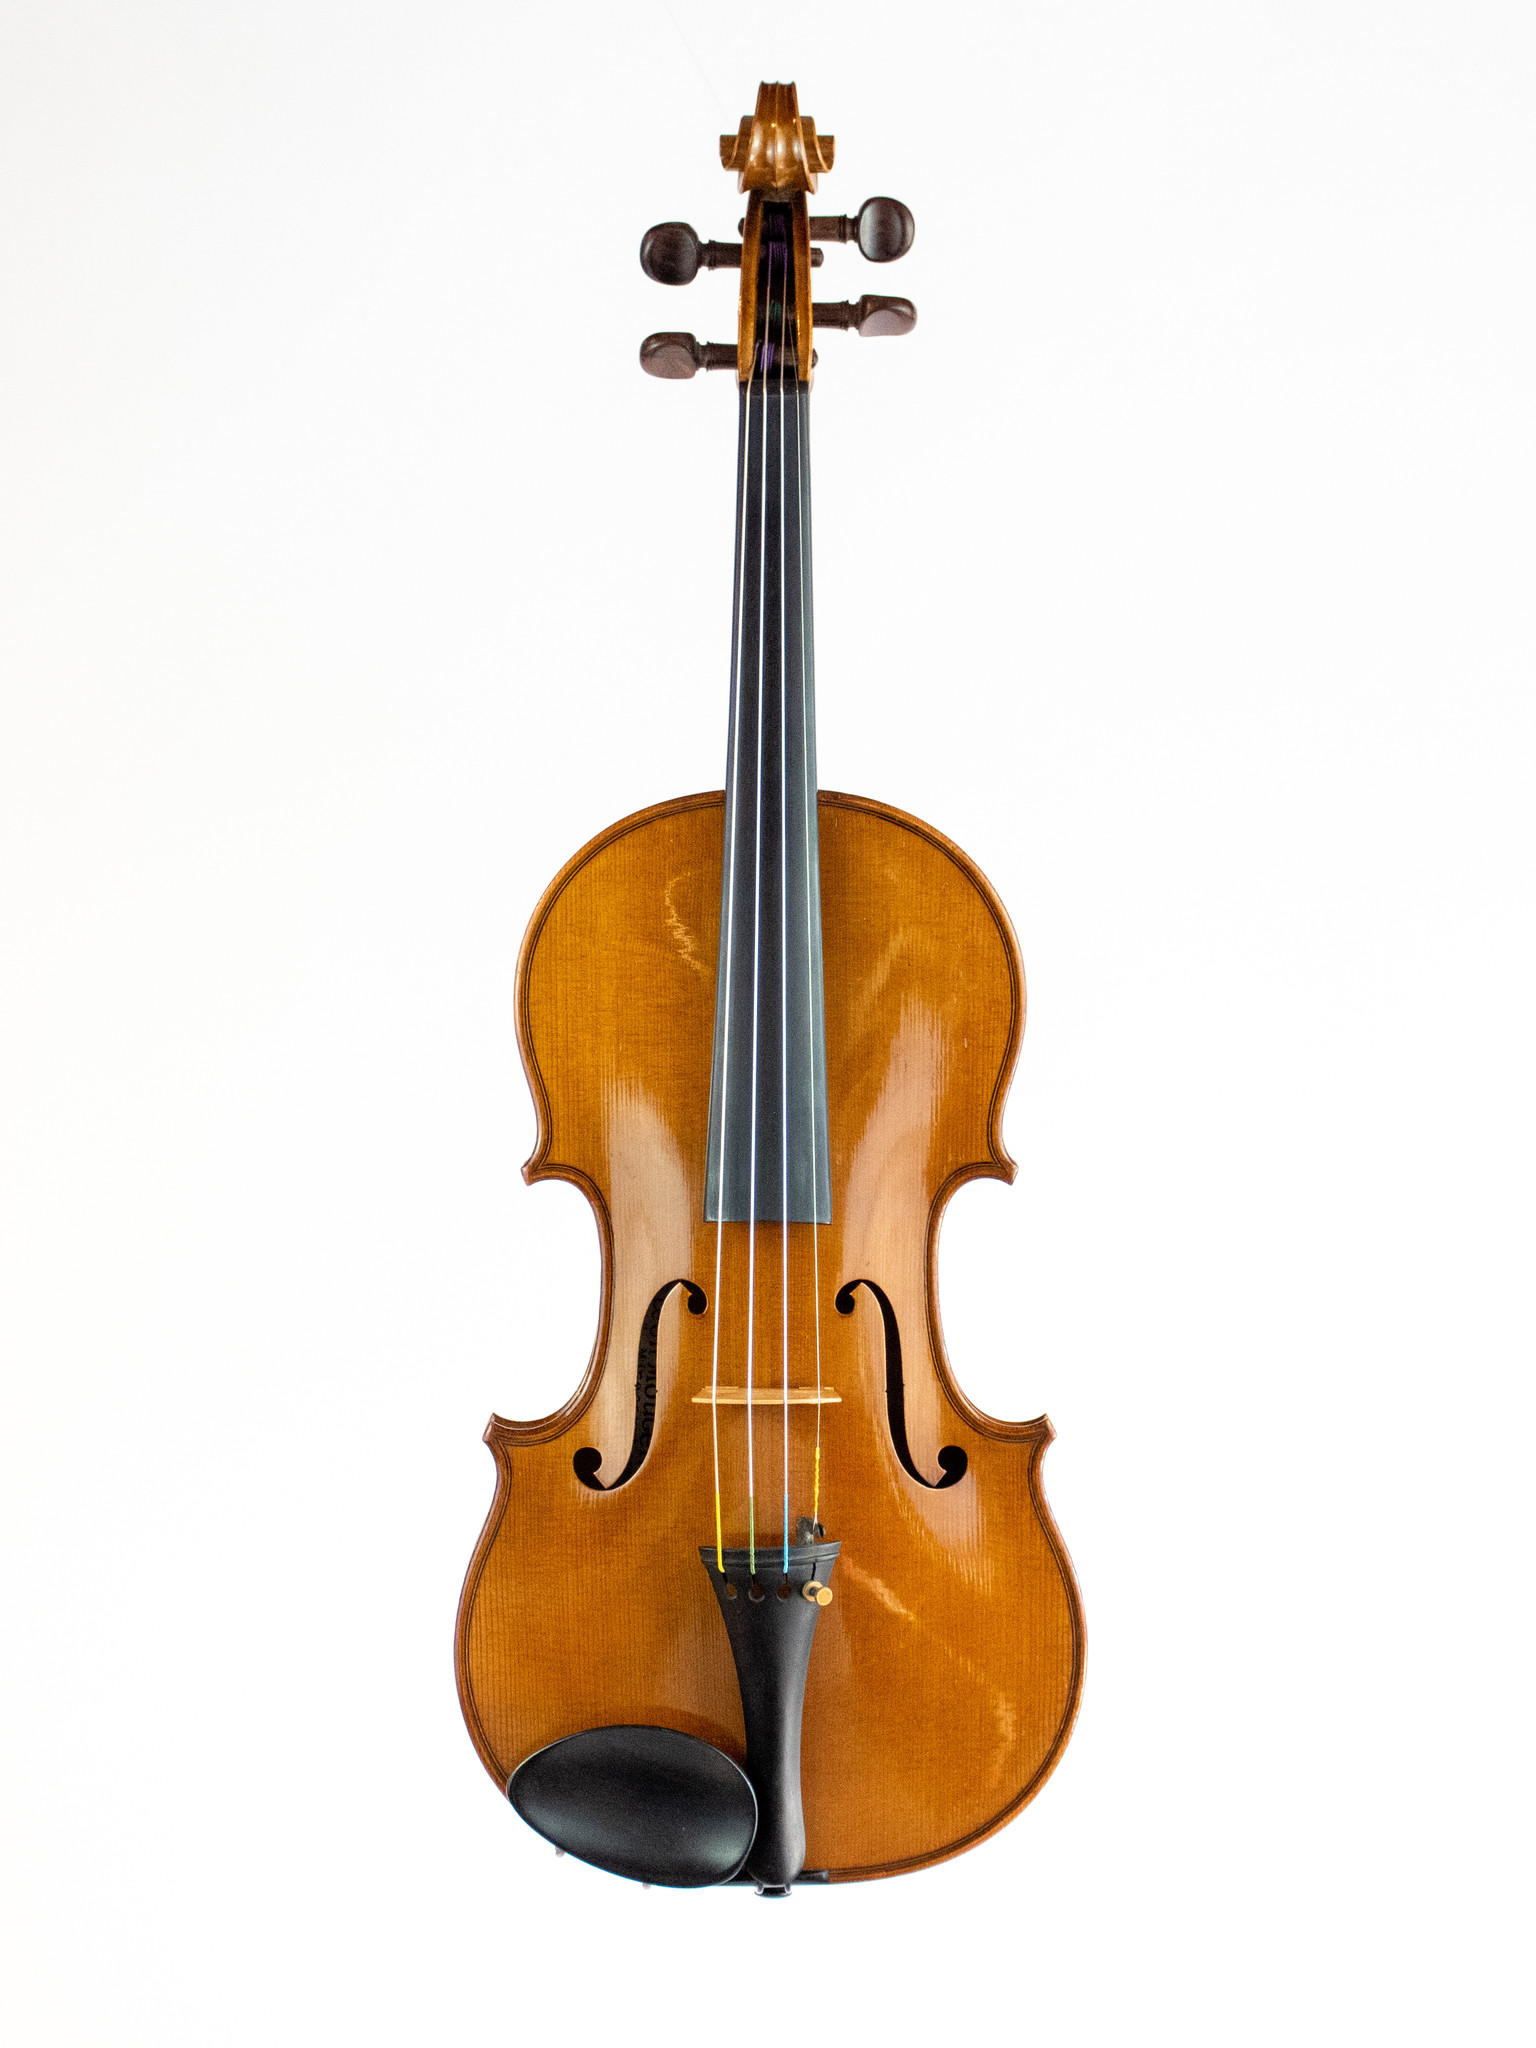 French Leon Mougenot violin No. 247, 1919, Mirecourt, FRANCE